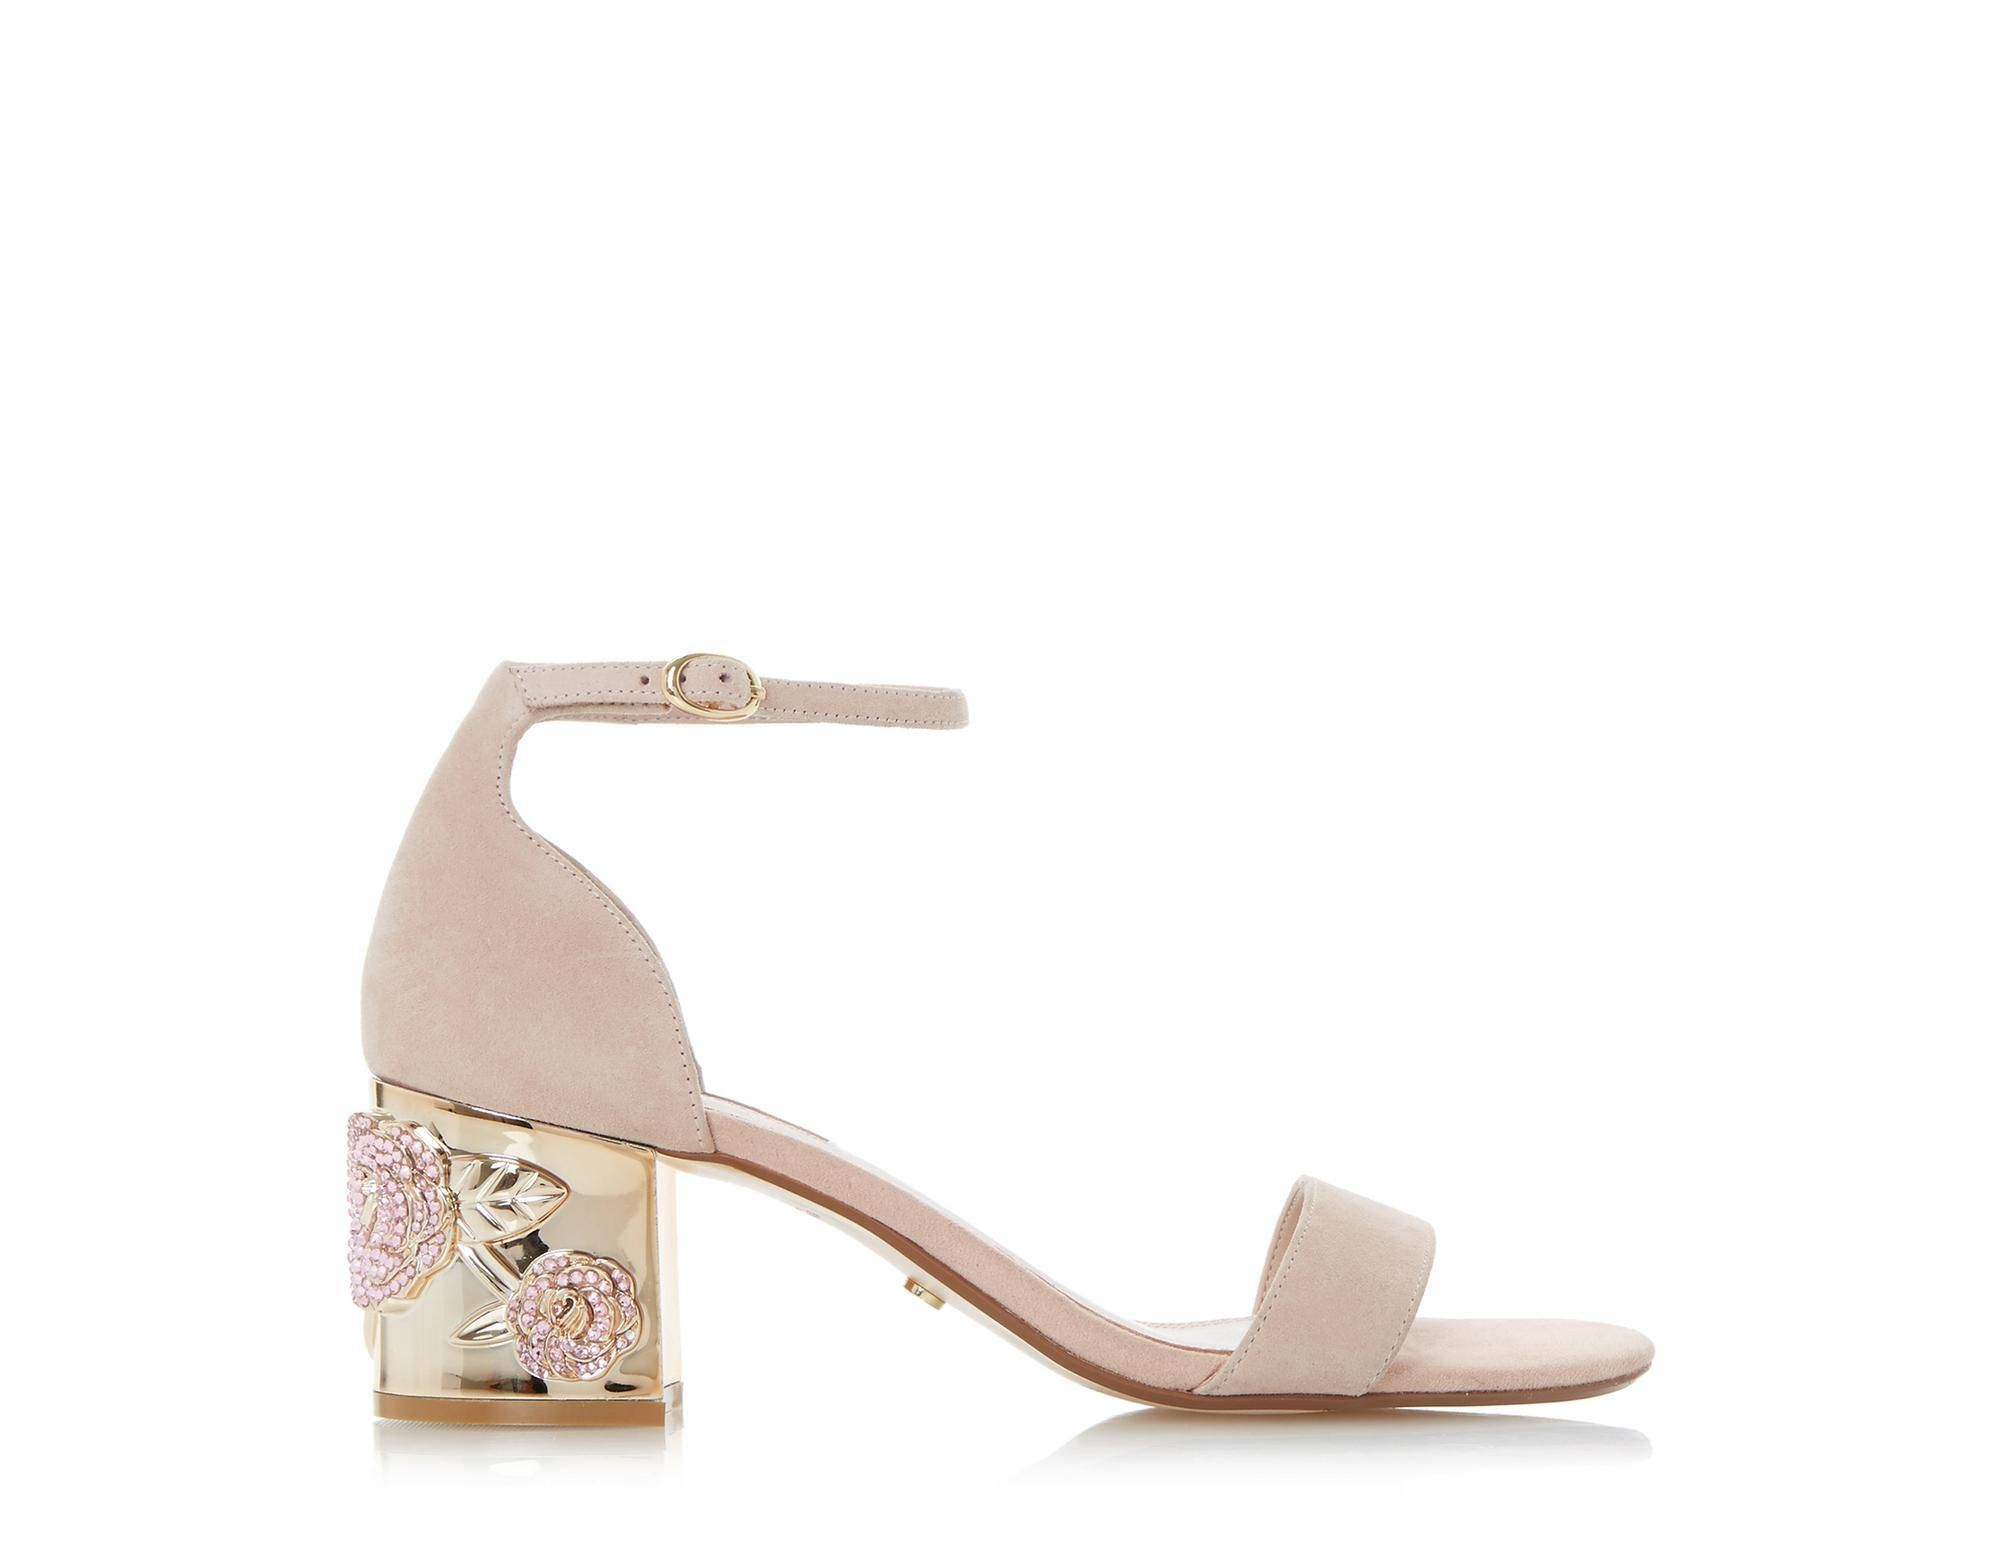 43c302115 Maygo is an exquisite two part sandal showcasing a rose embellished heel.  It features a